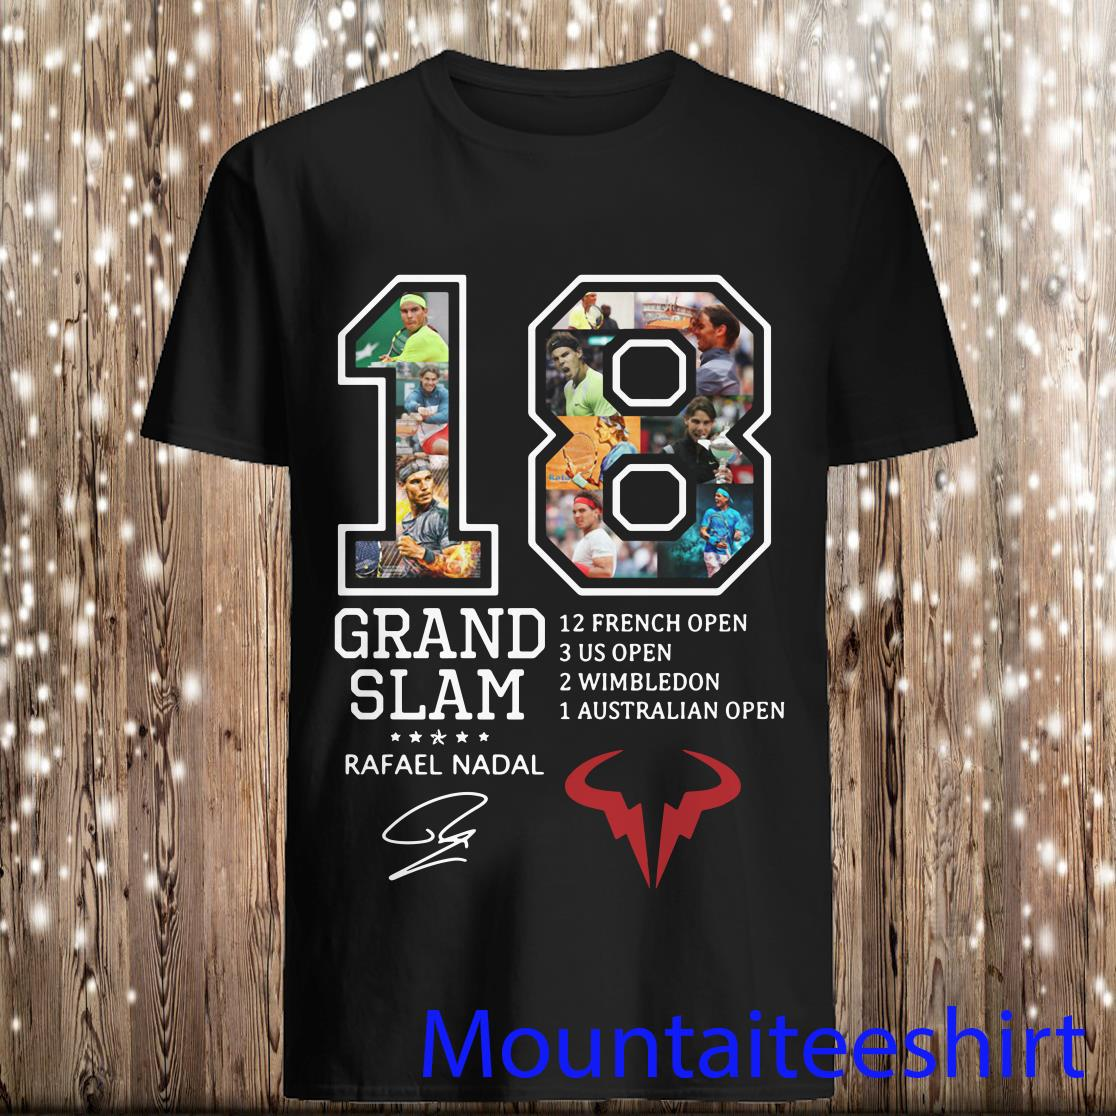 Rafael Nadal 18 Grand Slam 12 French Open Signature Shirt